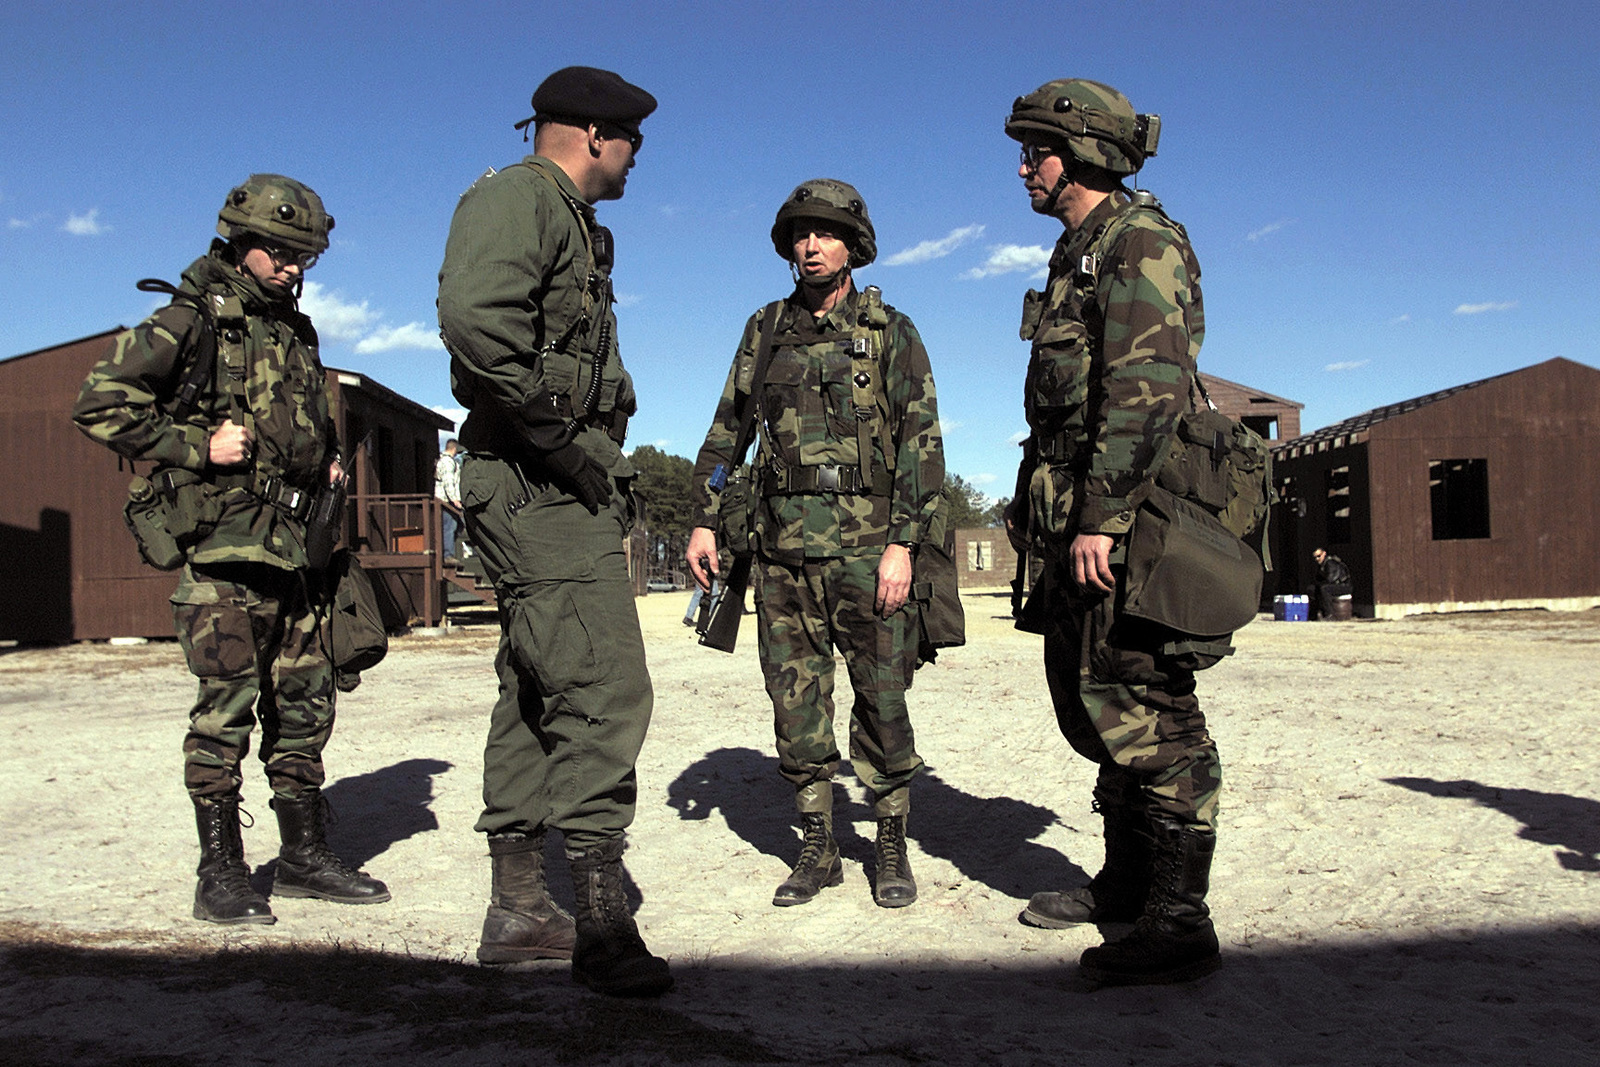 Straight on medium shot as US Air Force Colonel Mark Schultz (2nd from right), and Lieutenant Colonel Steve Kinne(far right), talk to the host nation security forces chief about the local criminal element, during field training exercises, Sunday, March 5, 2000. COL Schultz is the Operations Group Commander with 319th Air Refueling Wing, Grand Forks, North Dakota and LTC Kinne is assigned to 319th Medical Squadron, Grand Forks, North Dakota. Both are deployed to the Air Mobility Warfare Center, Fort Dix, New Jersey for the Phoenix Readiness Combat Course